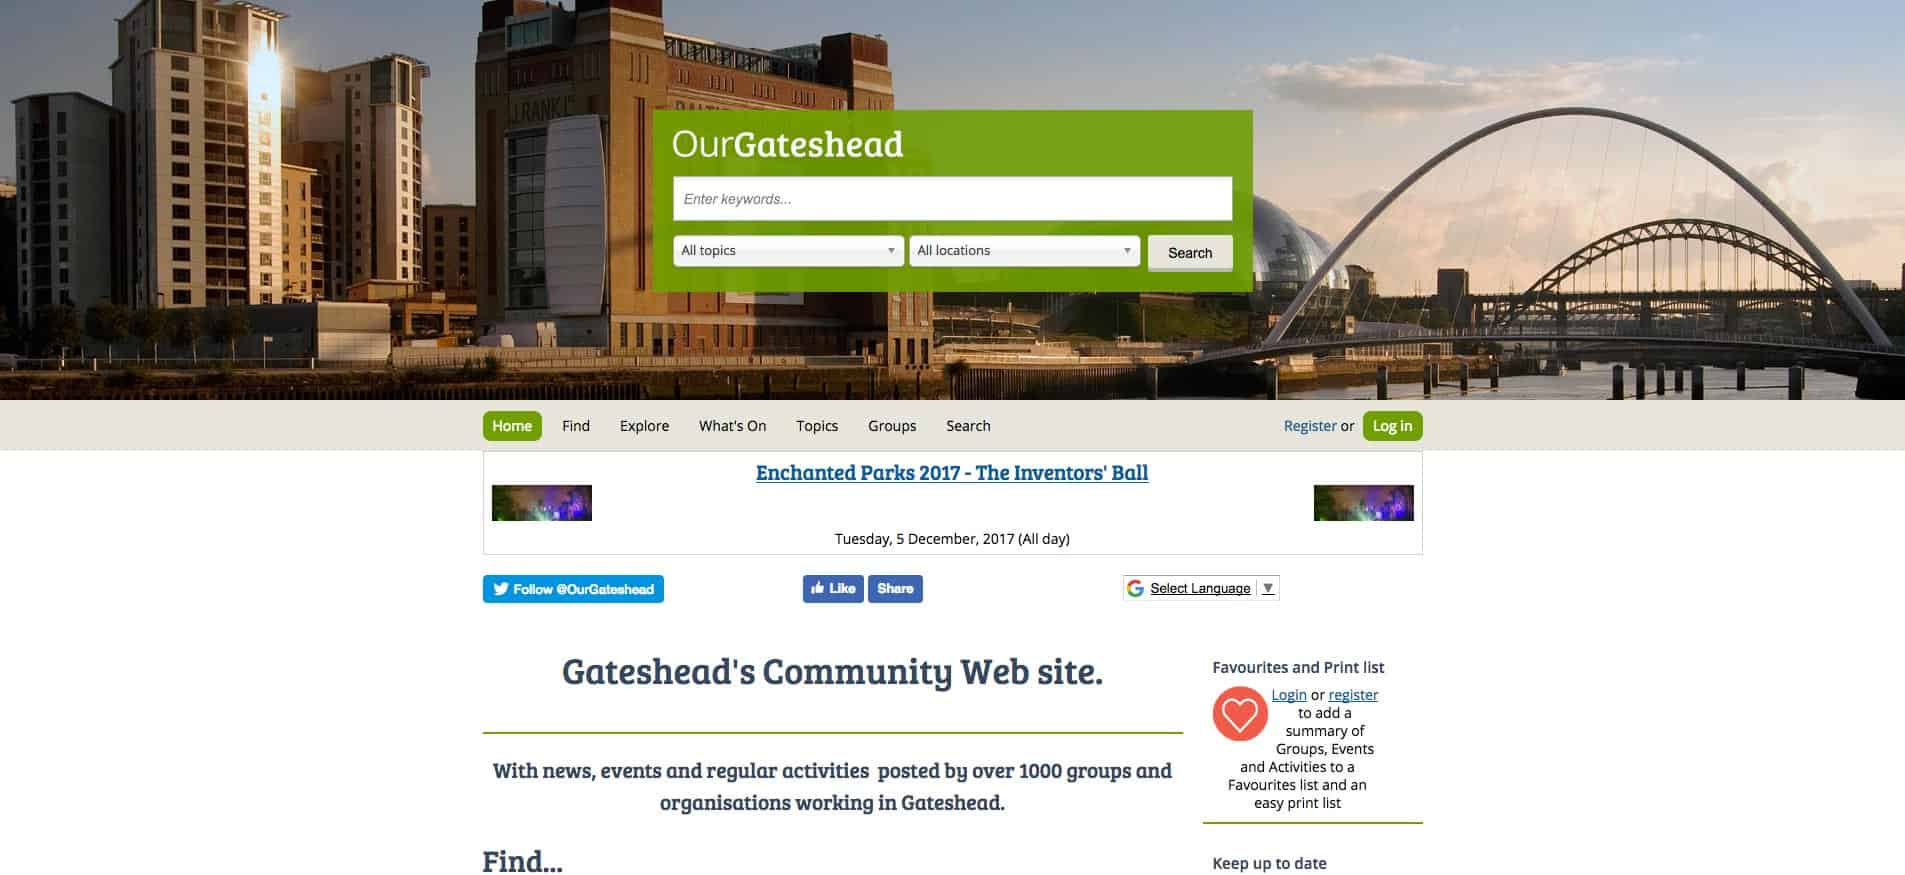 Our Gateshead